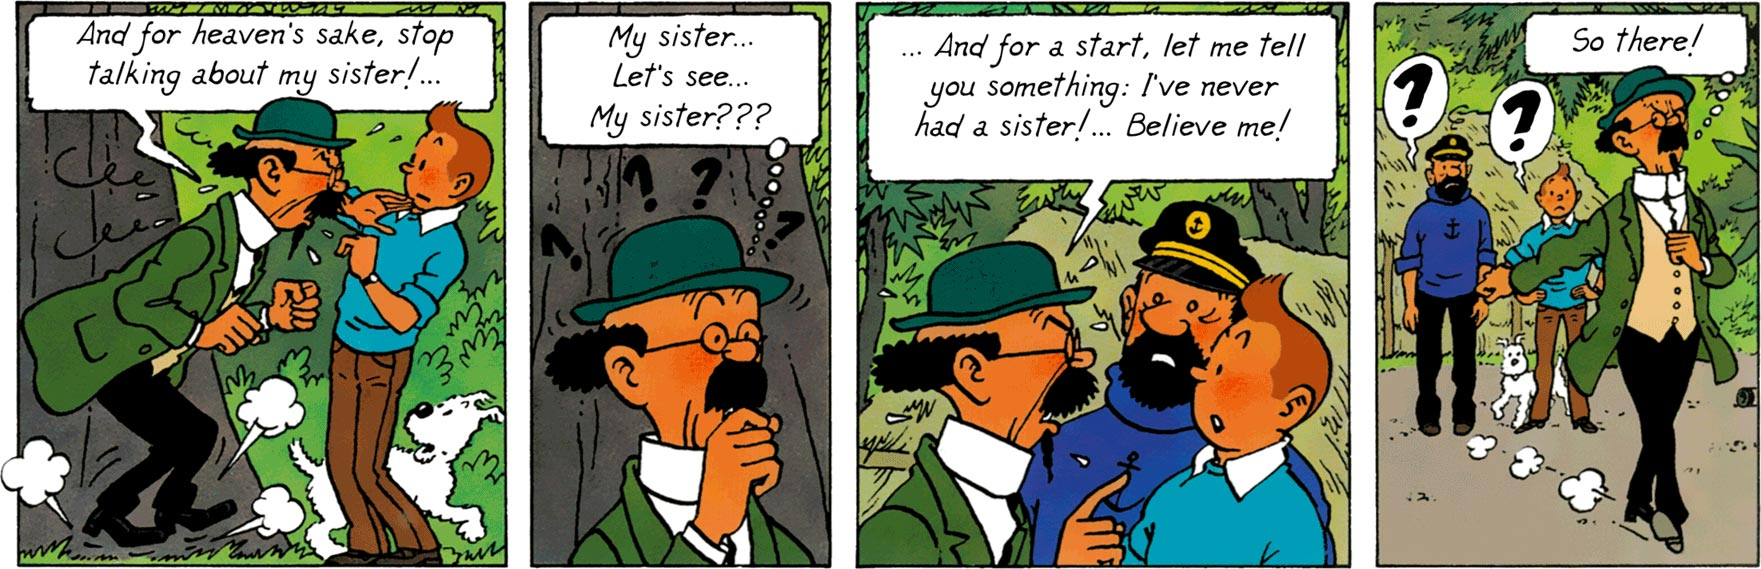 Calculs have never had sister - Tintin and the Picaros